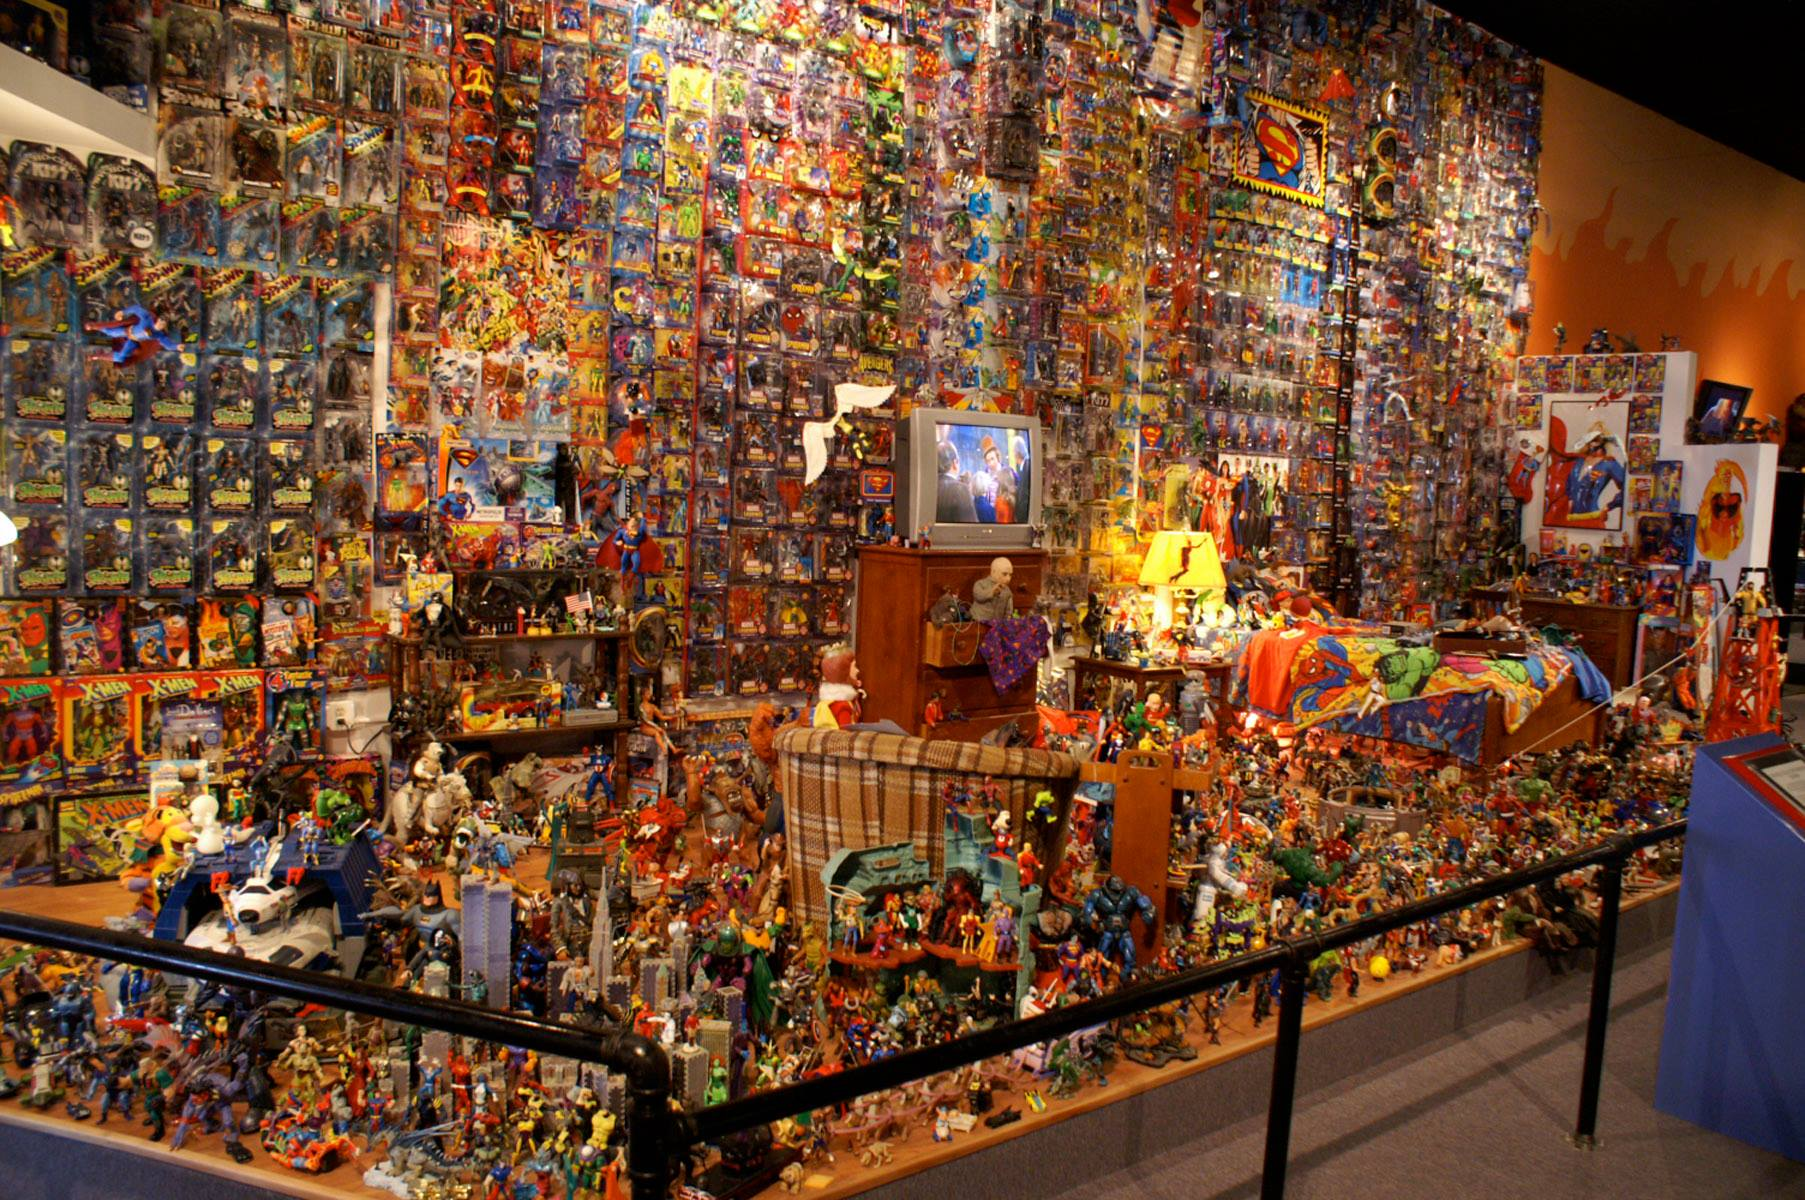 The Worlds First Action Figure Museum